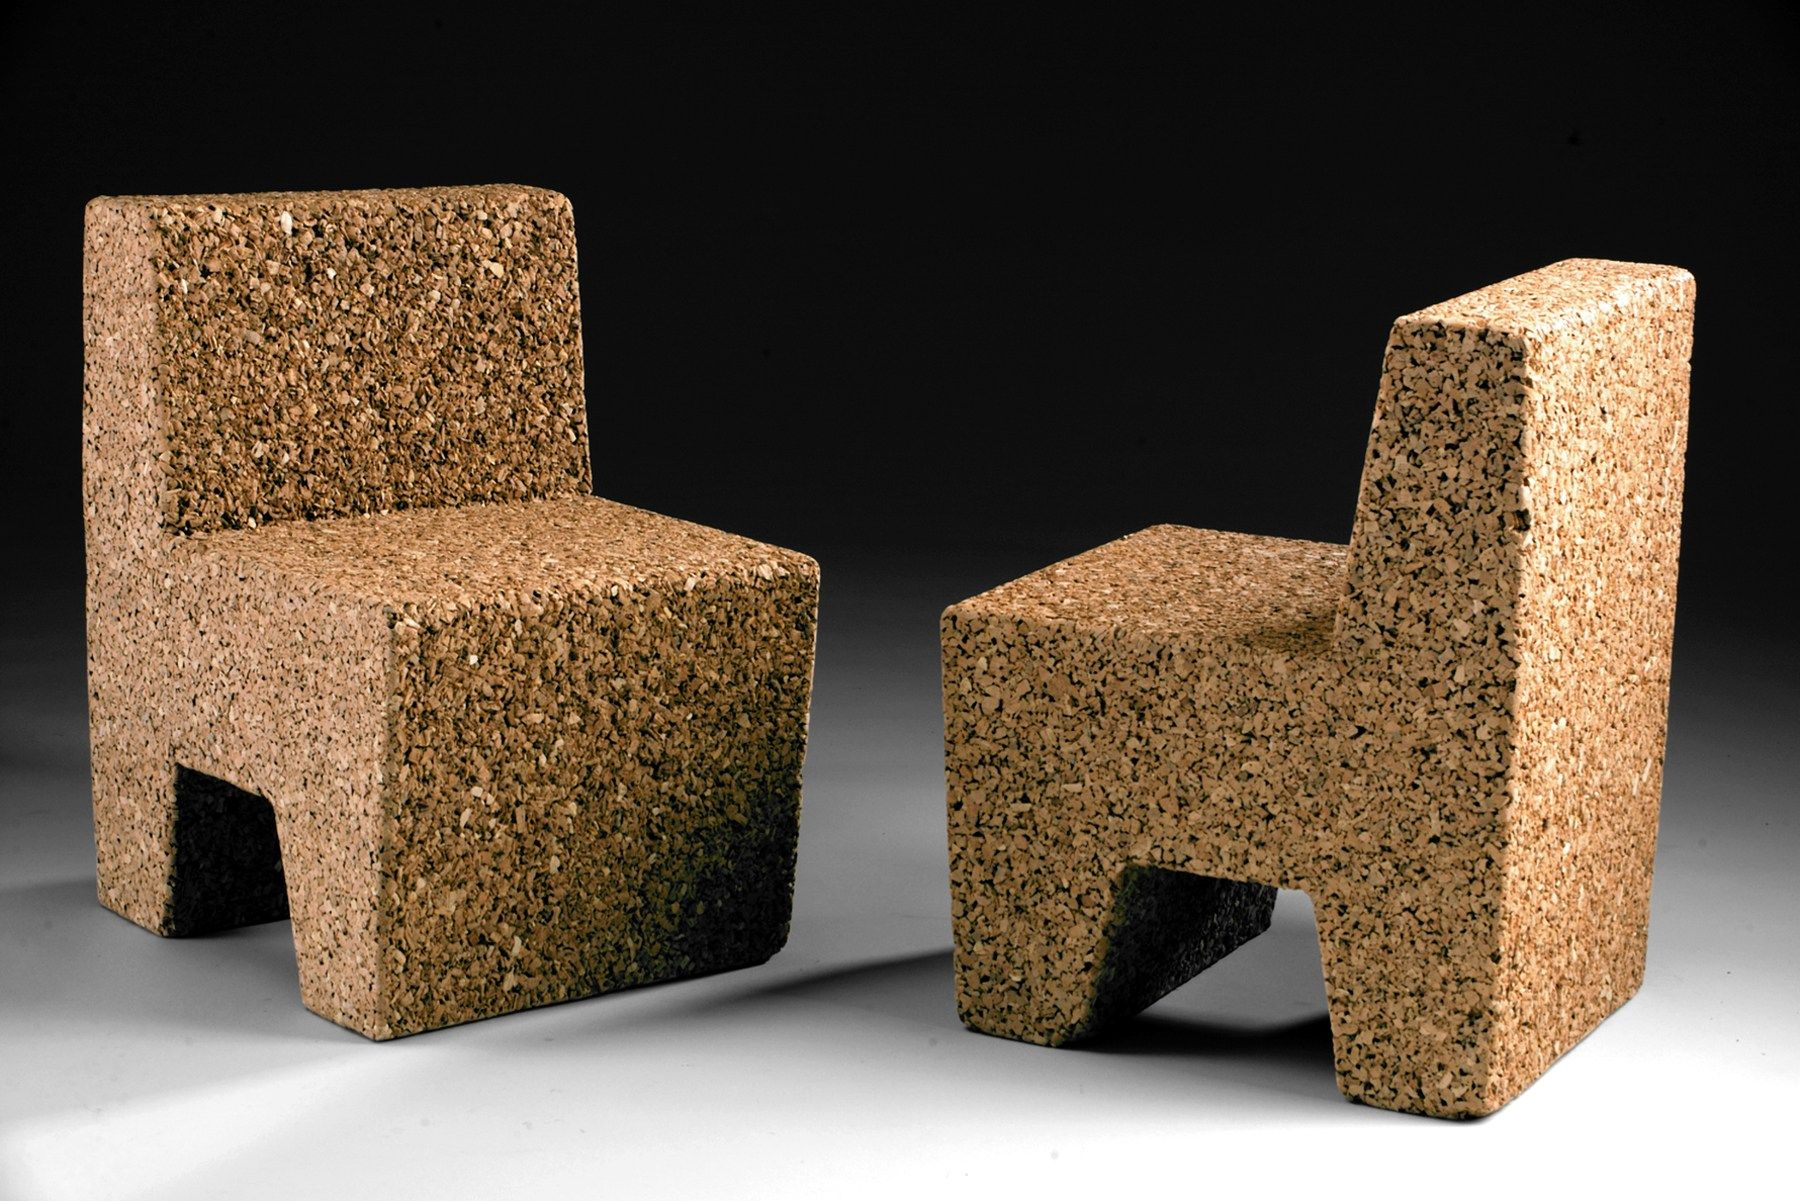 cork furniture. Cork Furniture Is One Of Eco Friendly Contemporary Design Trends That Demonstrate Stylish Clean Lines And Offer Comfortable Functional Items A